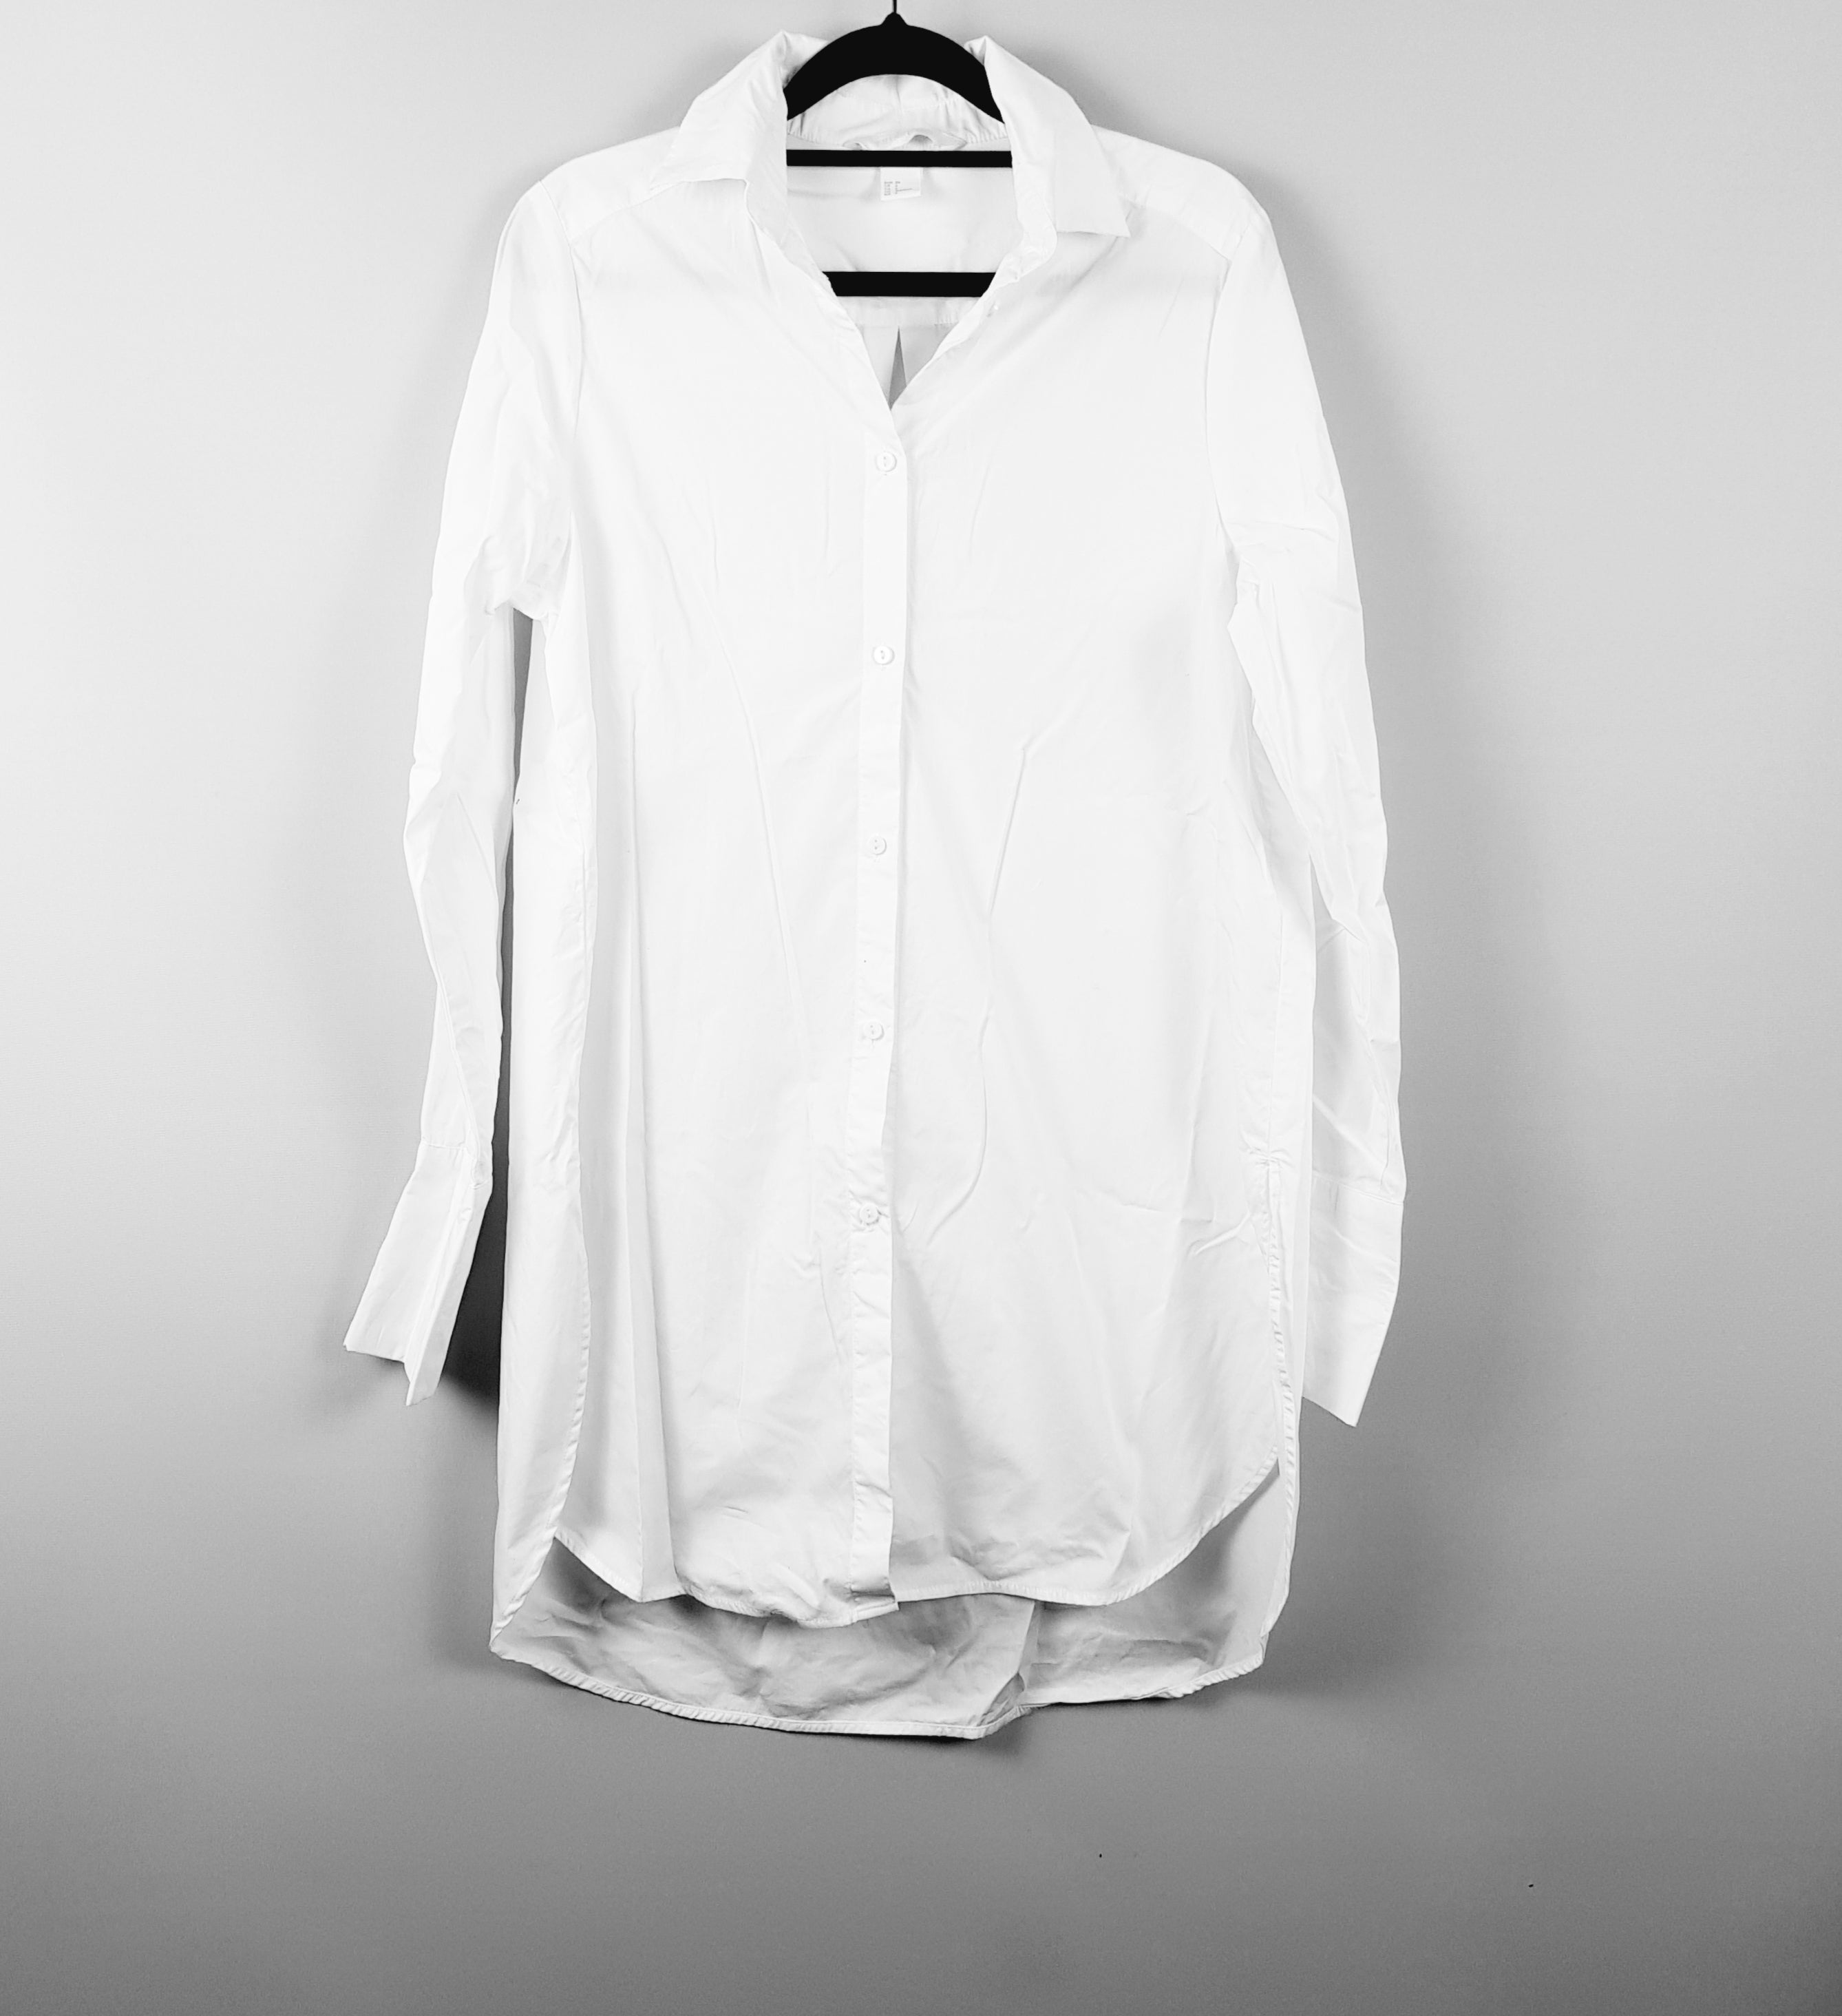 H & M - White Shirt/Dress - PRELOVED